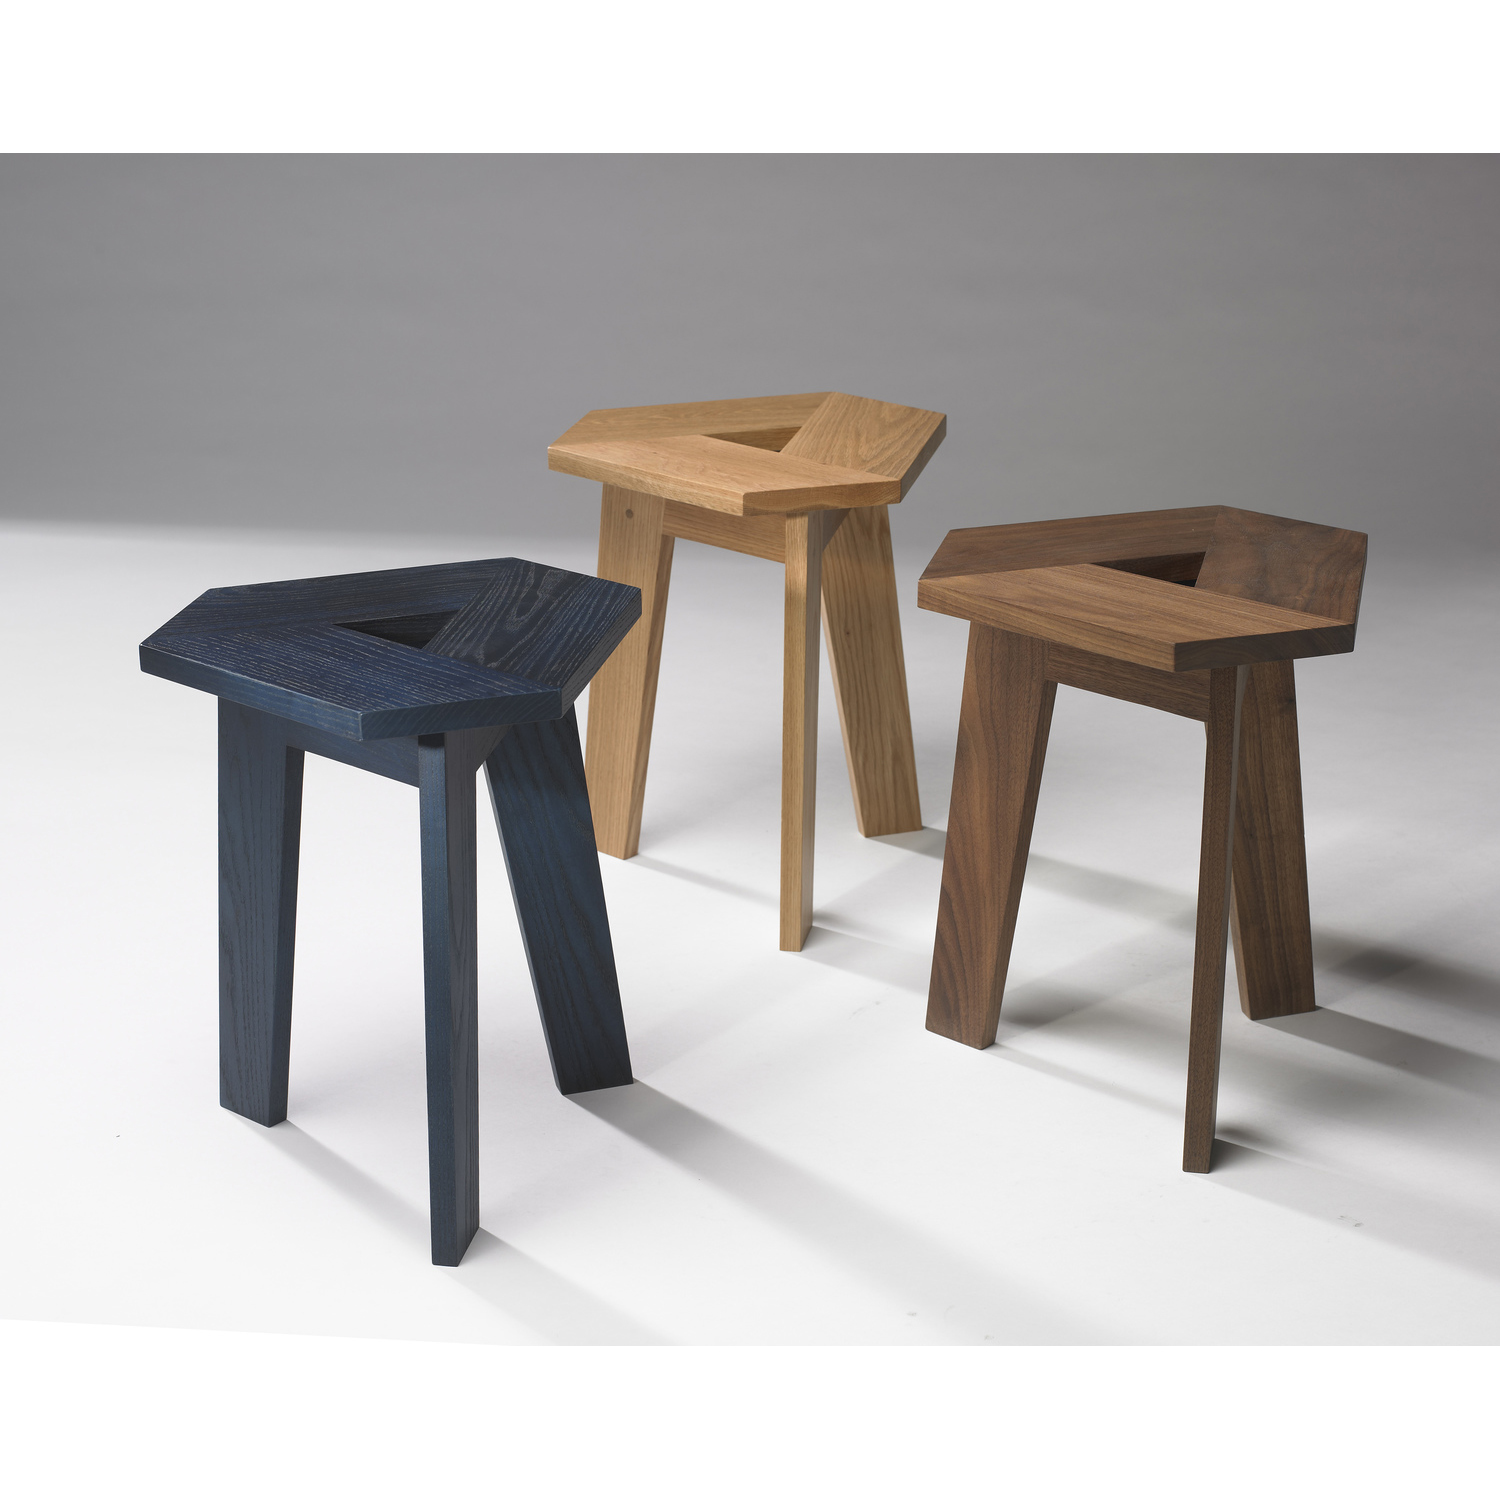 100xbtr tri stools group